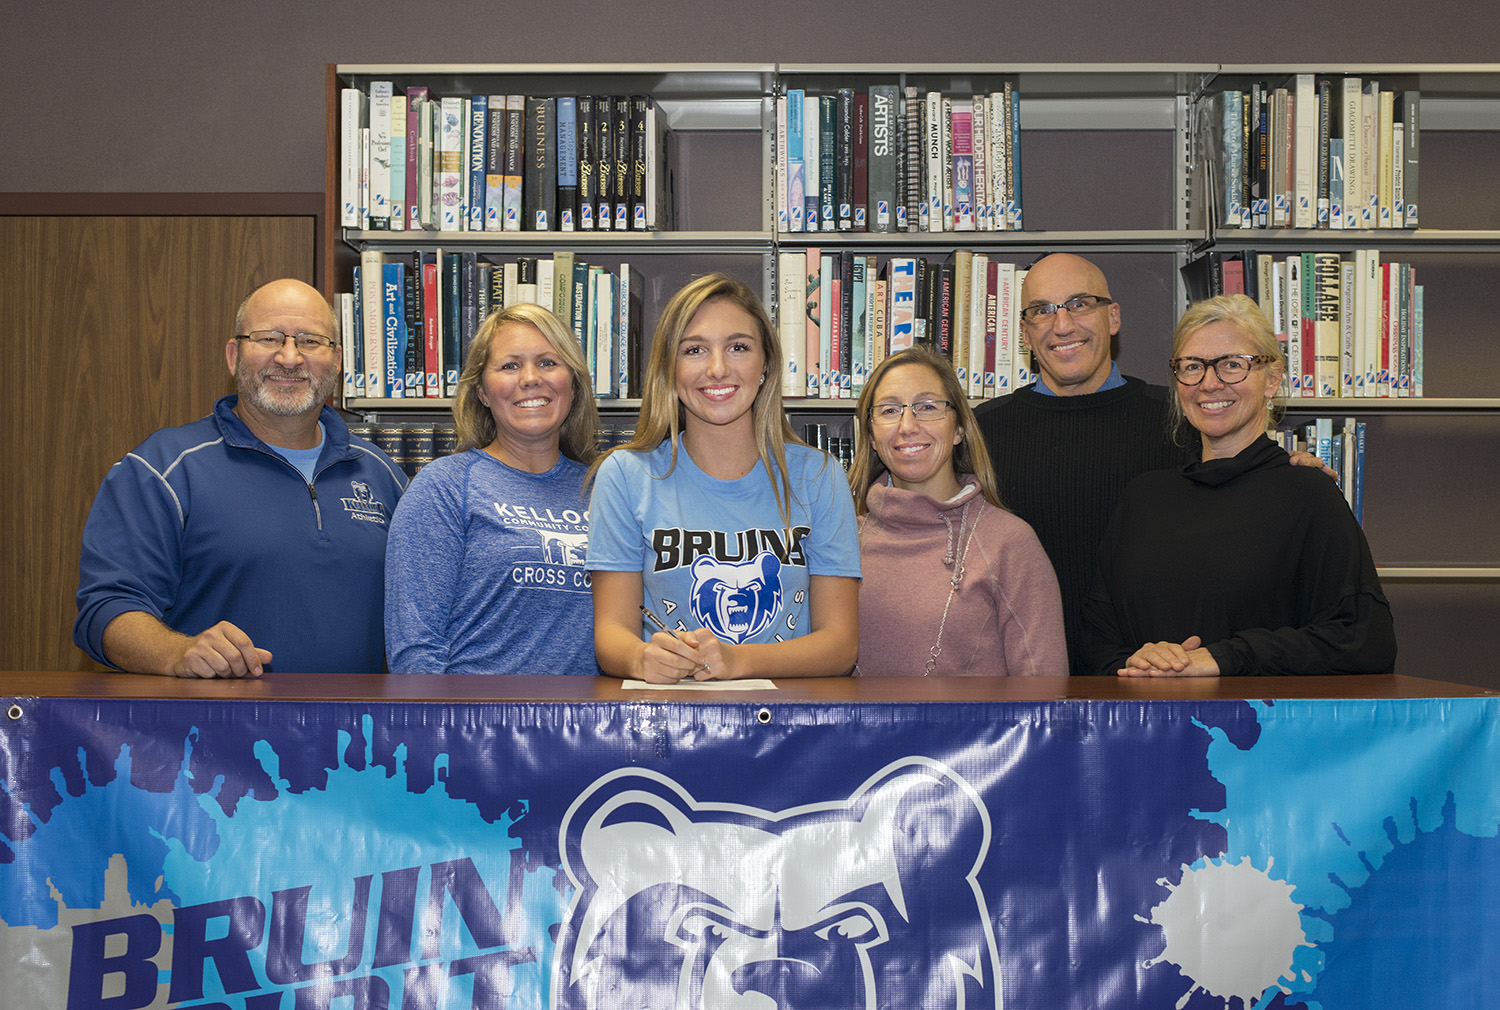 Pictured, from left to right, are KCC Athletic Director Tom Shaw, Head KCC Cross-Country Coach Erin Lane, KCC cross-country recruit Maggie Wood, Lakeview High School Girl's Cross-Country Coach Becky Pryor, Michael Wood (father) and Sheila Wood (mother).